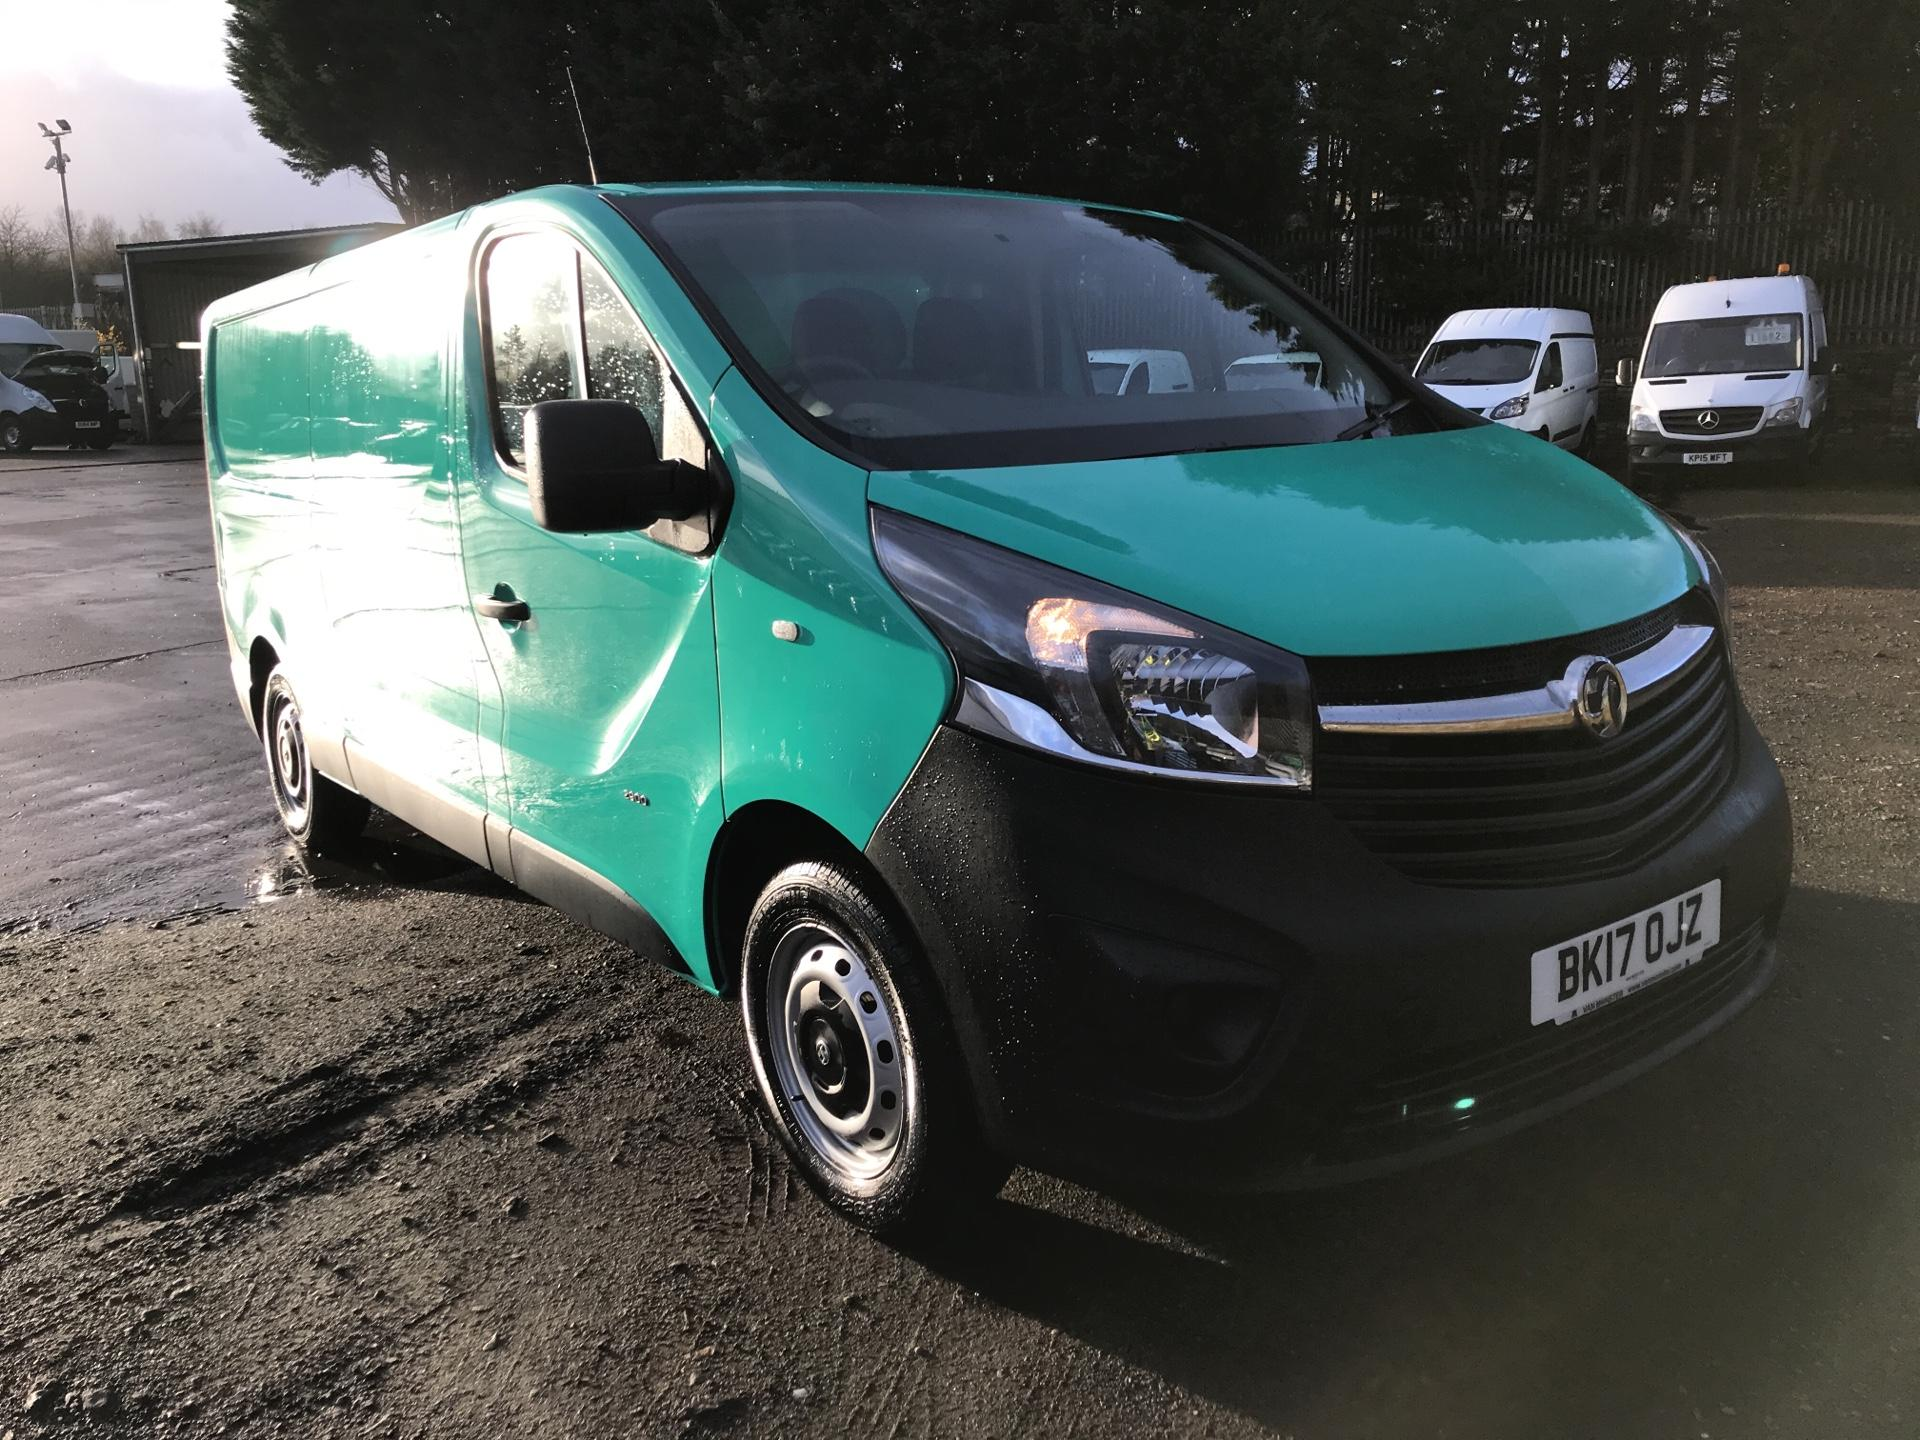 2017 Vauxhall Vivaro L2 H1 2900 1.6 CDTI 95PS EURO 6 (VALUE RANGE VEHICLE - CONDITION REFLECTED IN PRICE) (BK17OJZ)